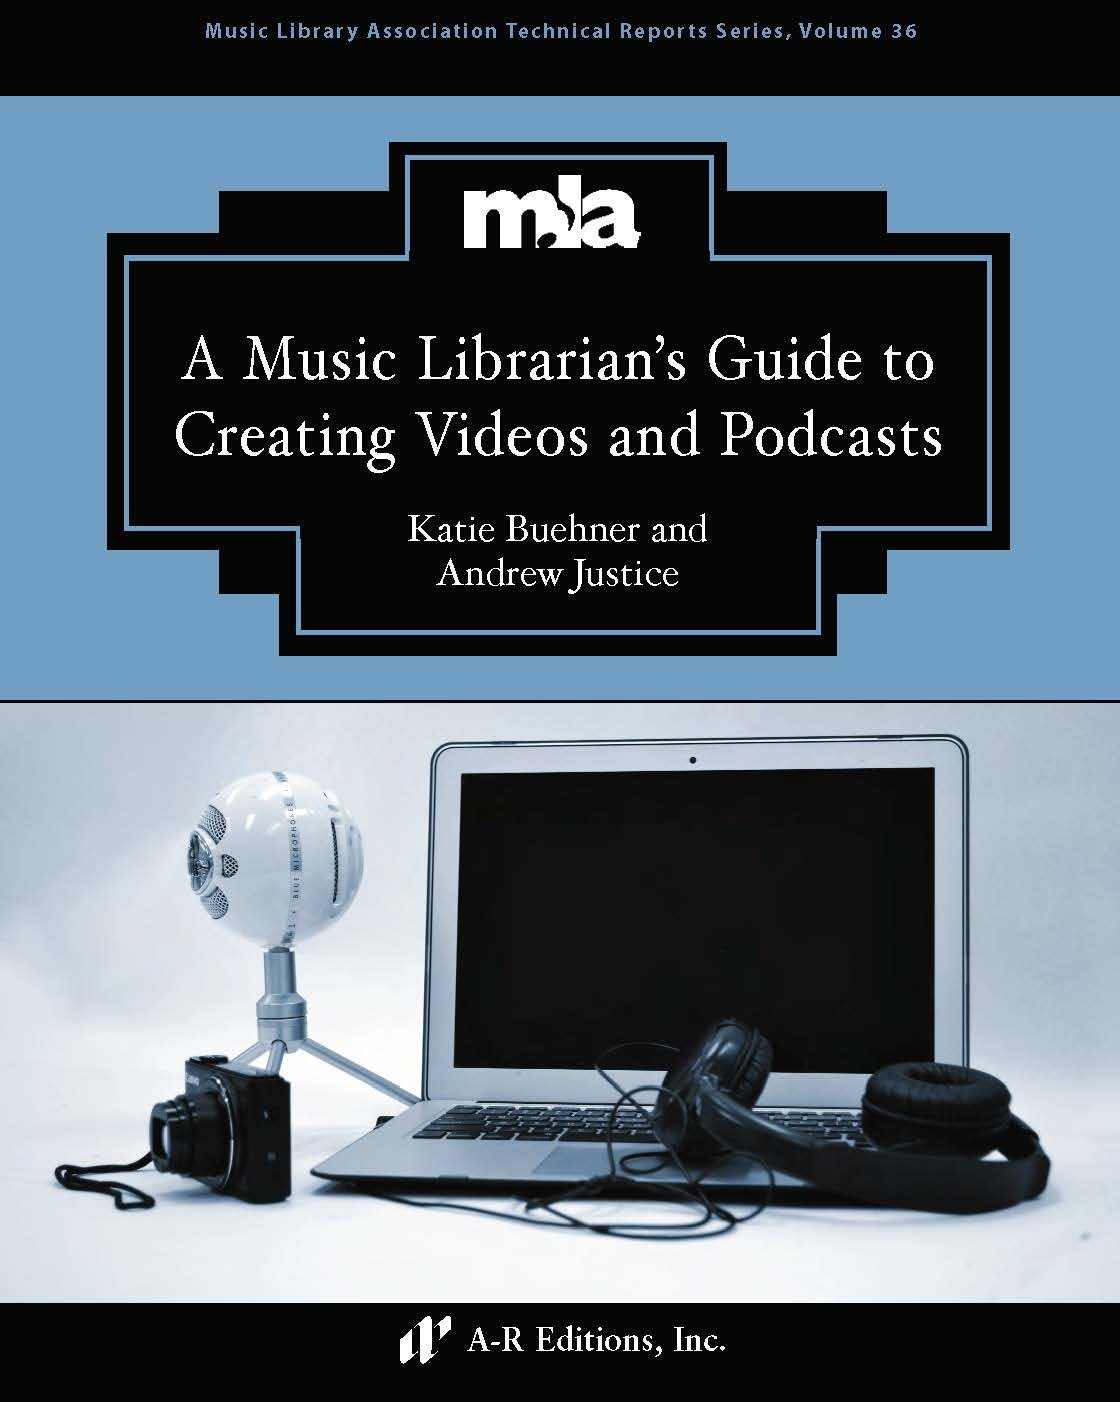 Buehner and Justice: A Music Librarian's Guide to Creating Videos and Podcasts